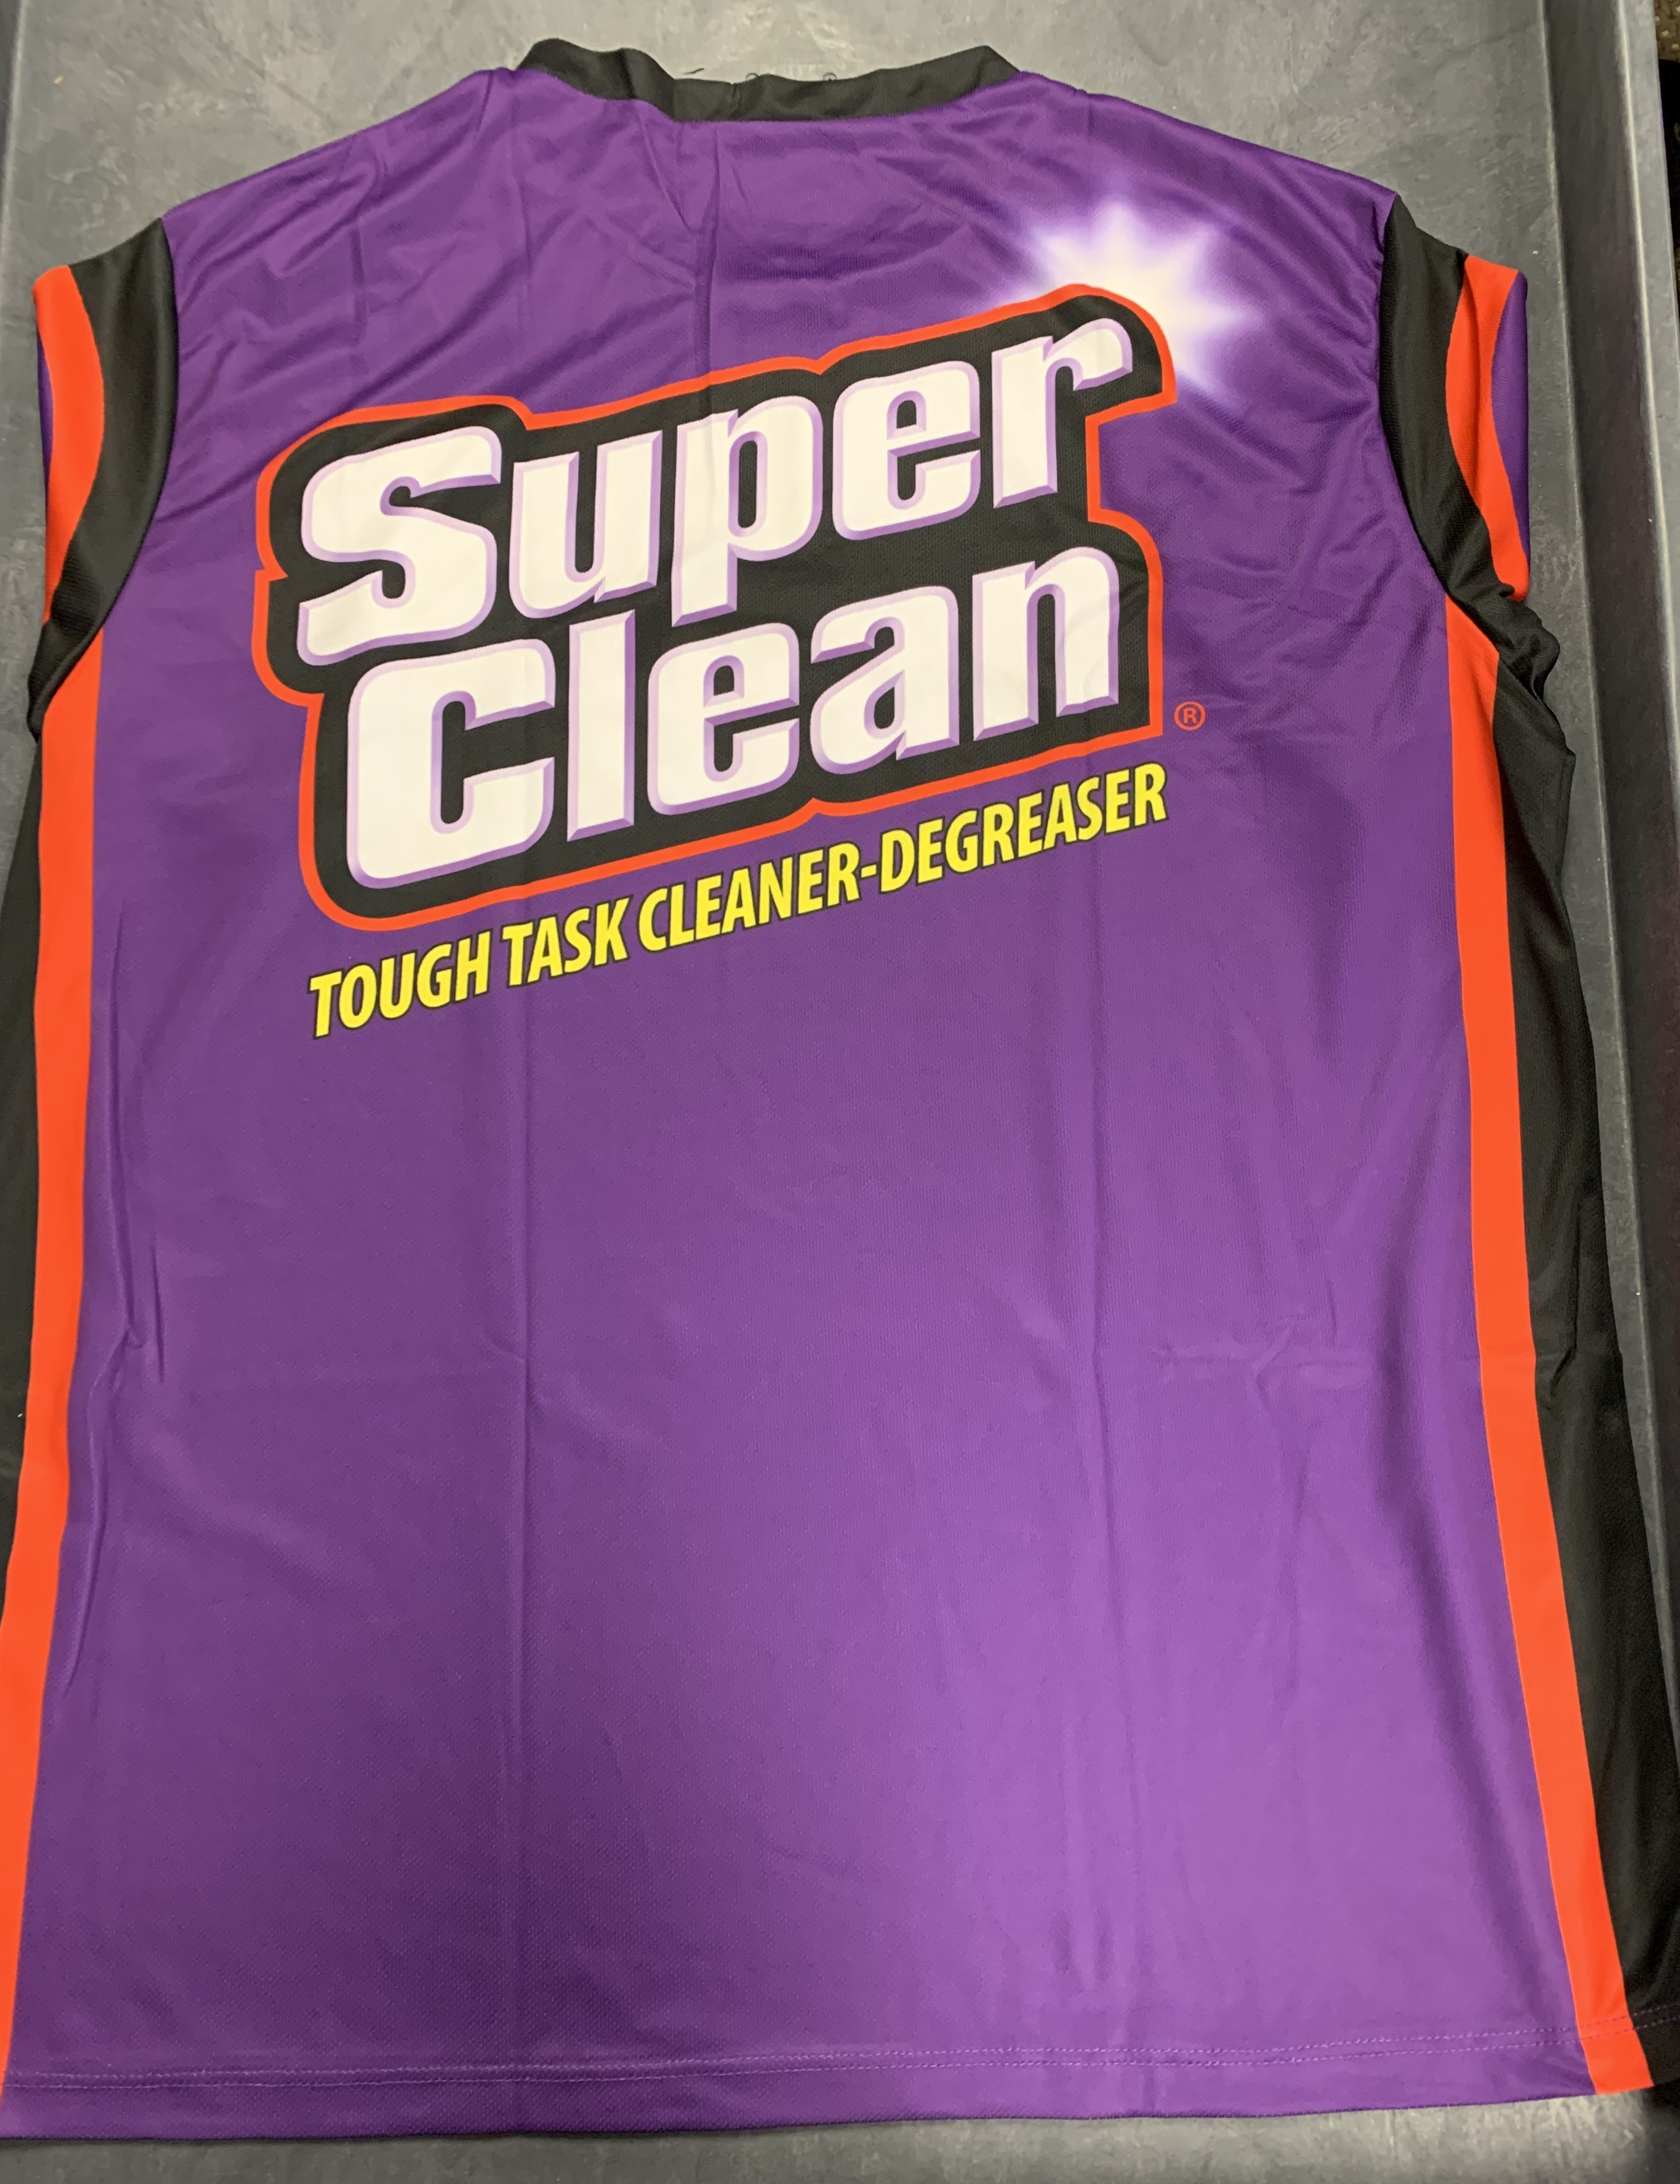 Super Clean jersey back with logo